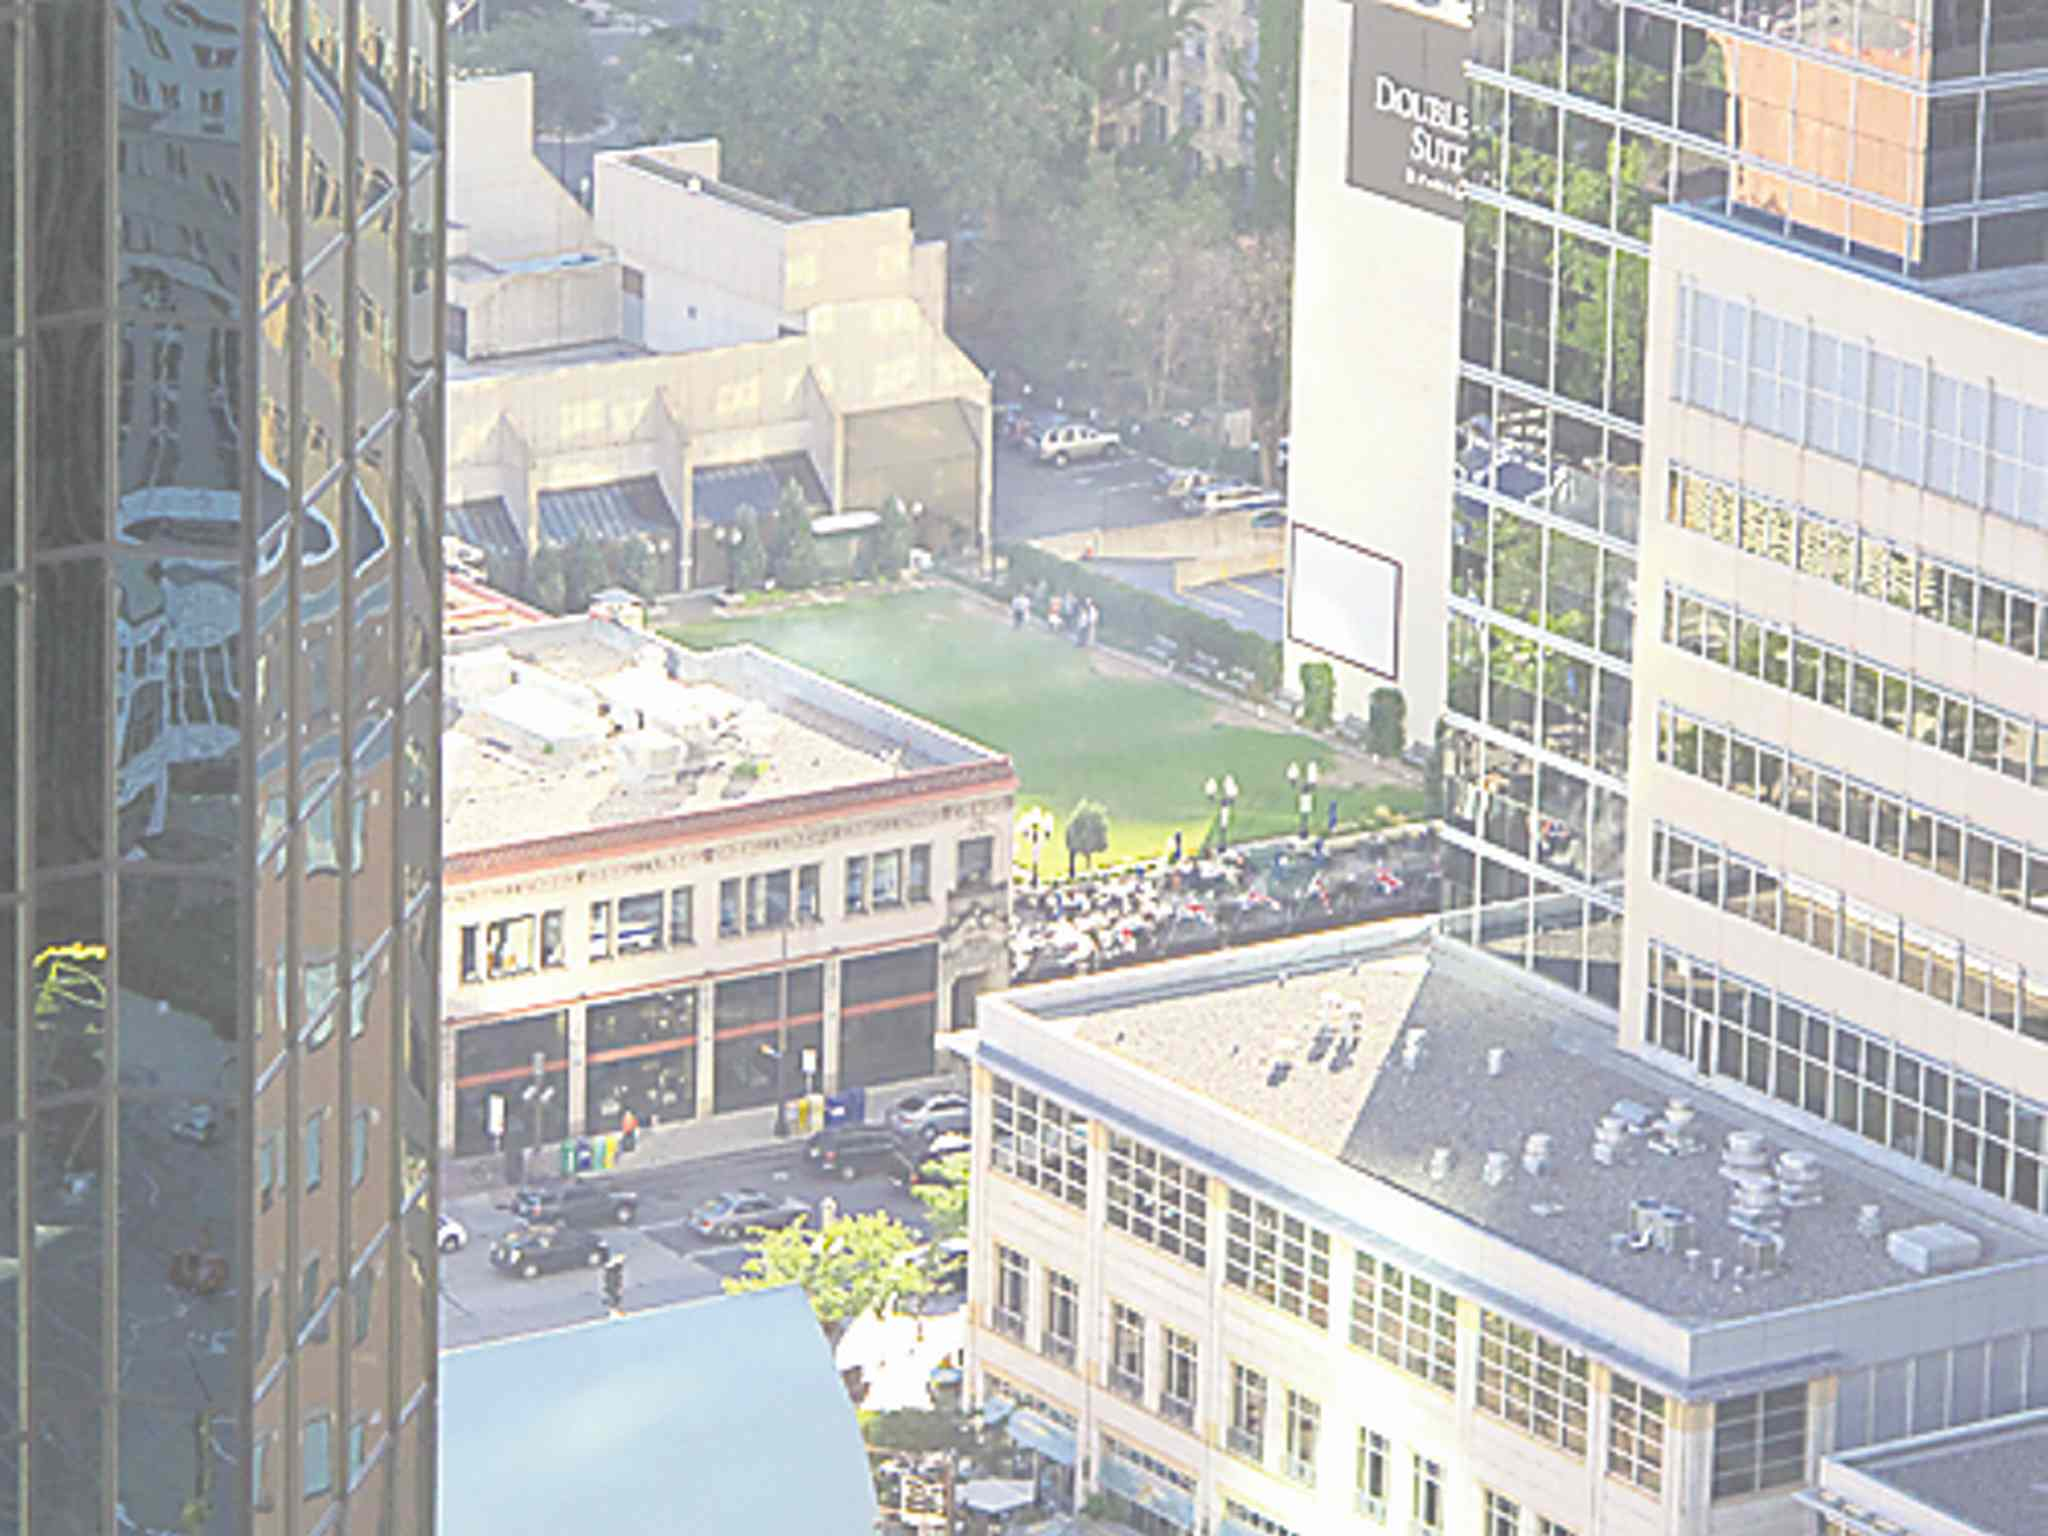 Brit's Pub boasts a lawn bowling green on its roof. This view of it is from the top of the Foshay Tower.